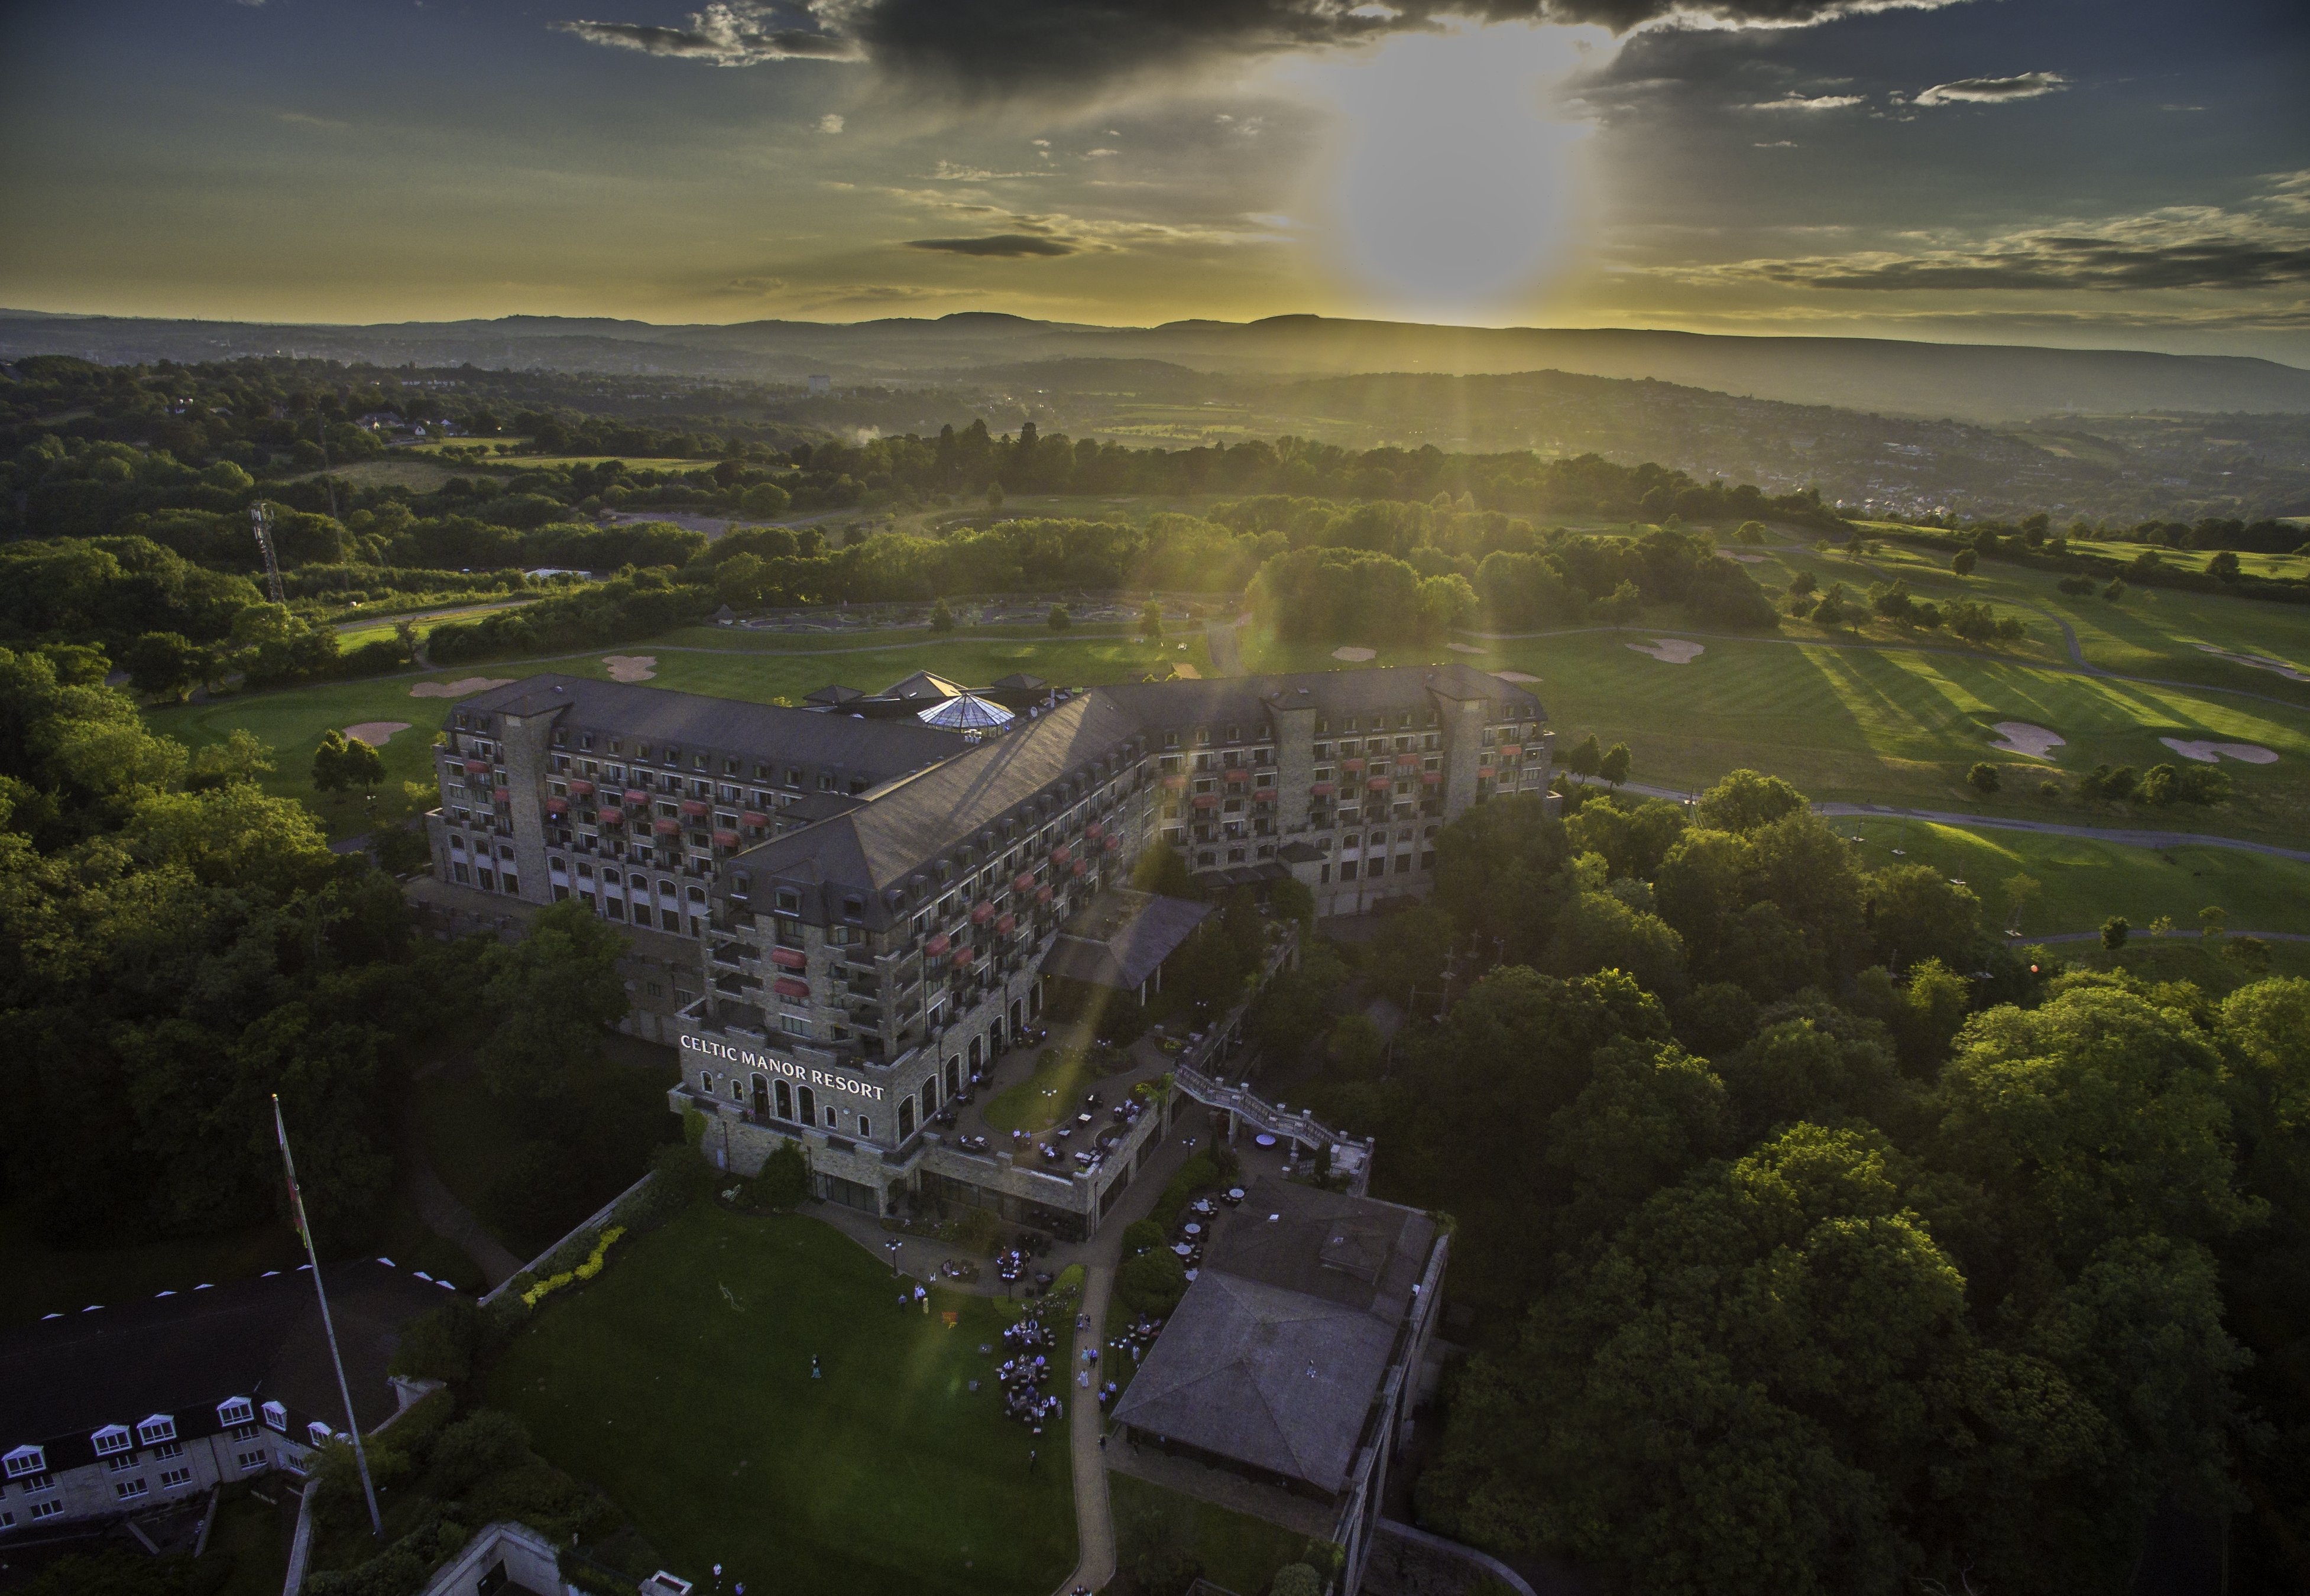 The Celtic Manor is a 5* resort based in Newport, South Wales.